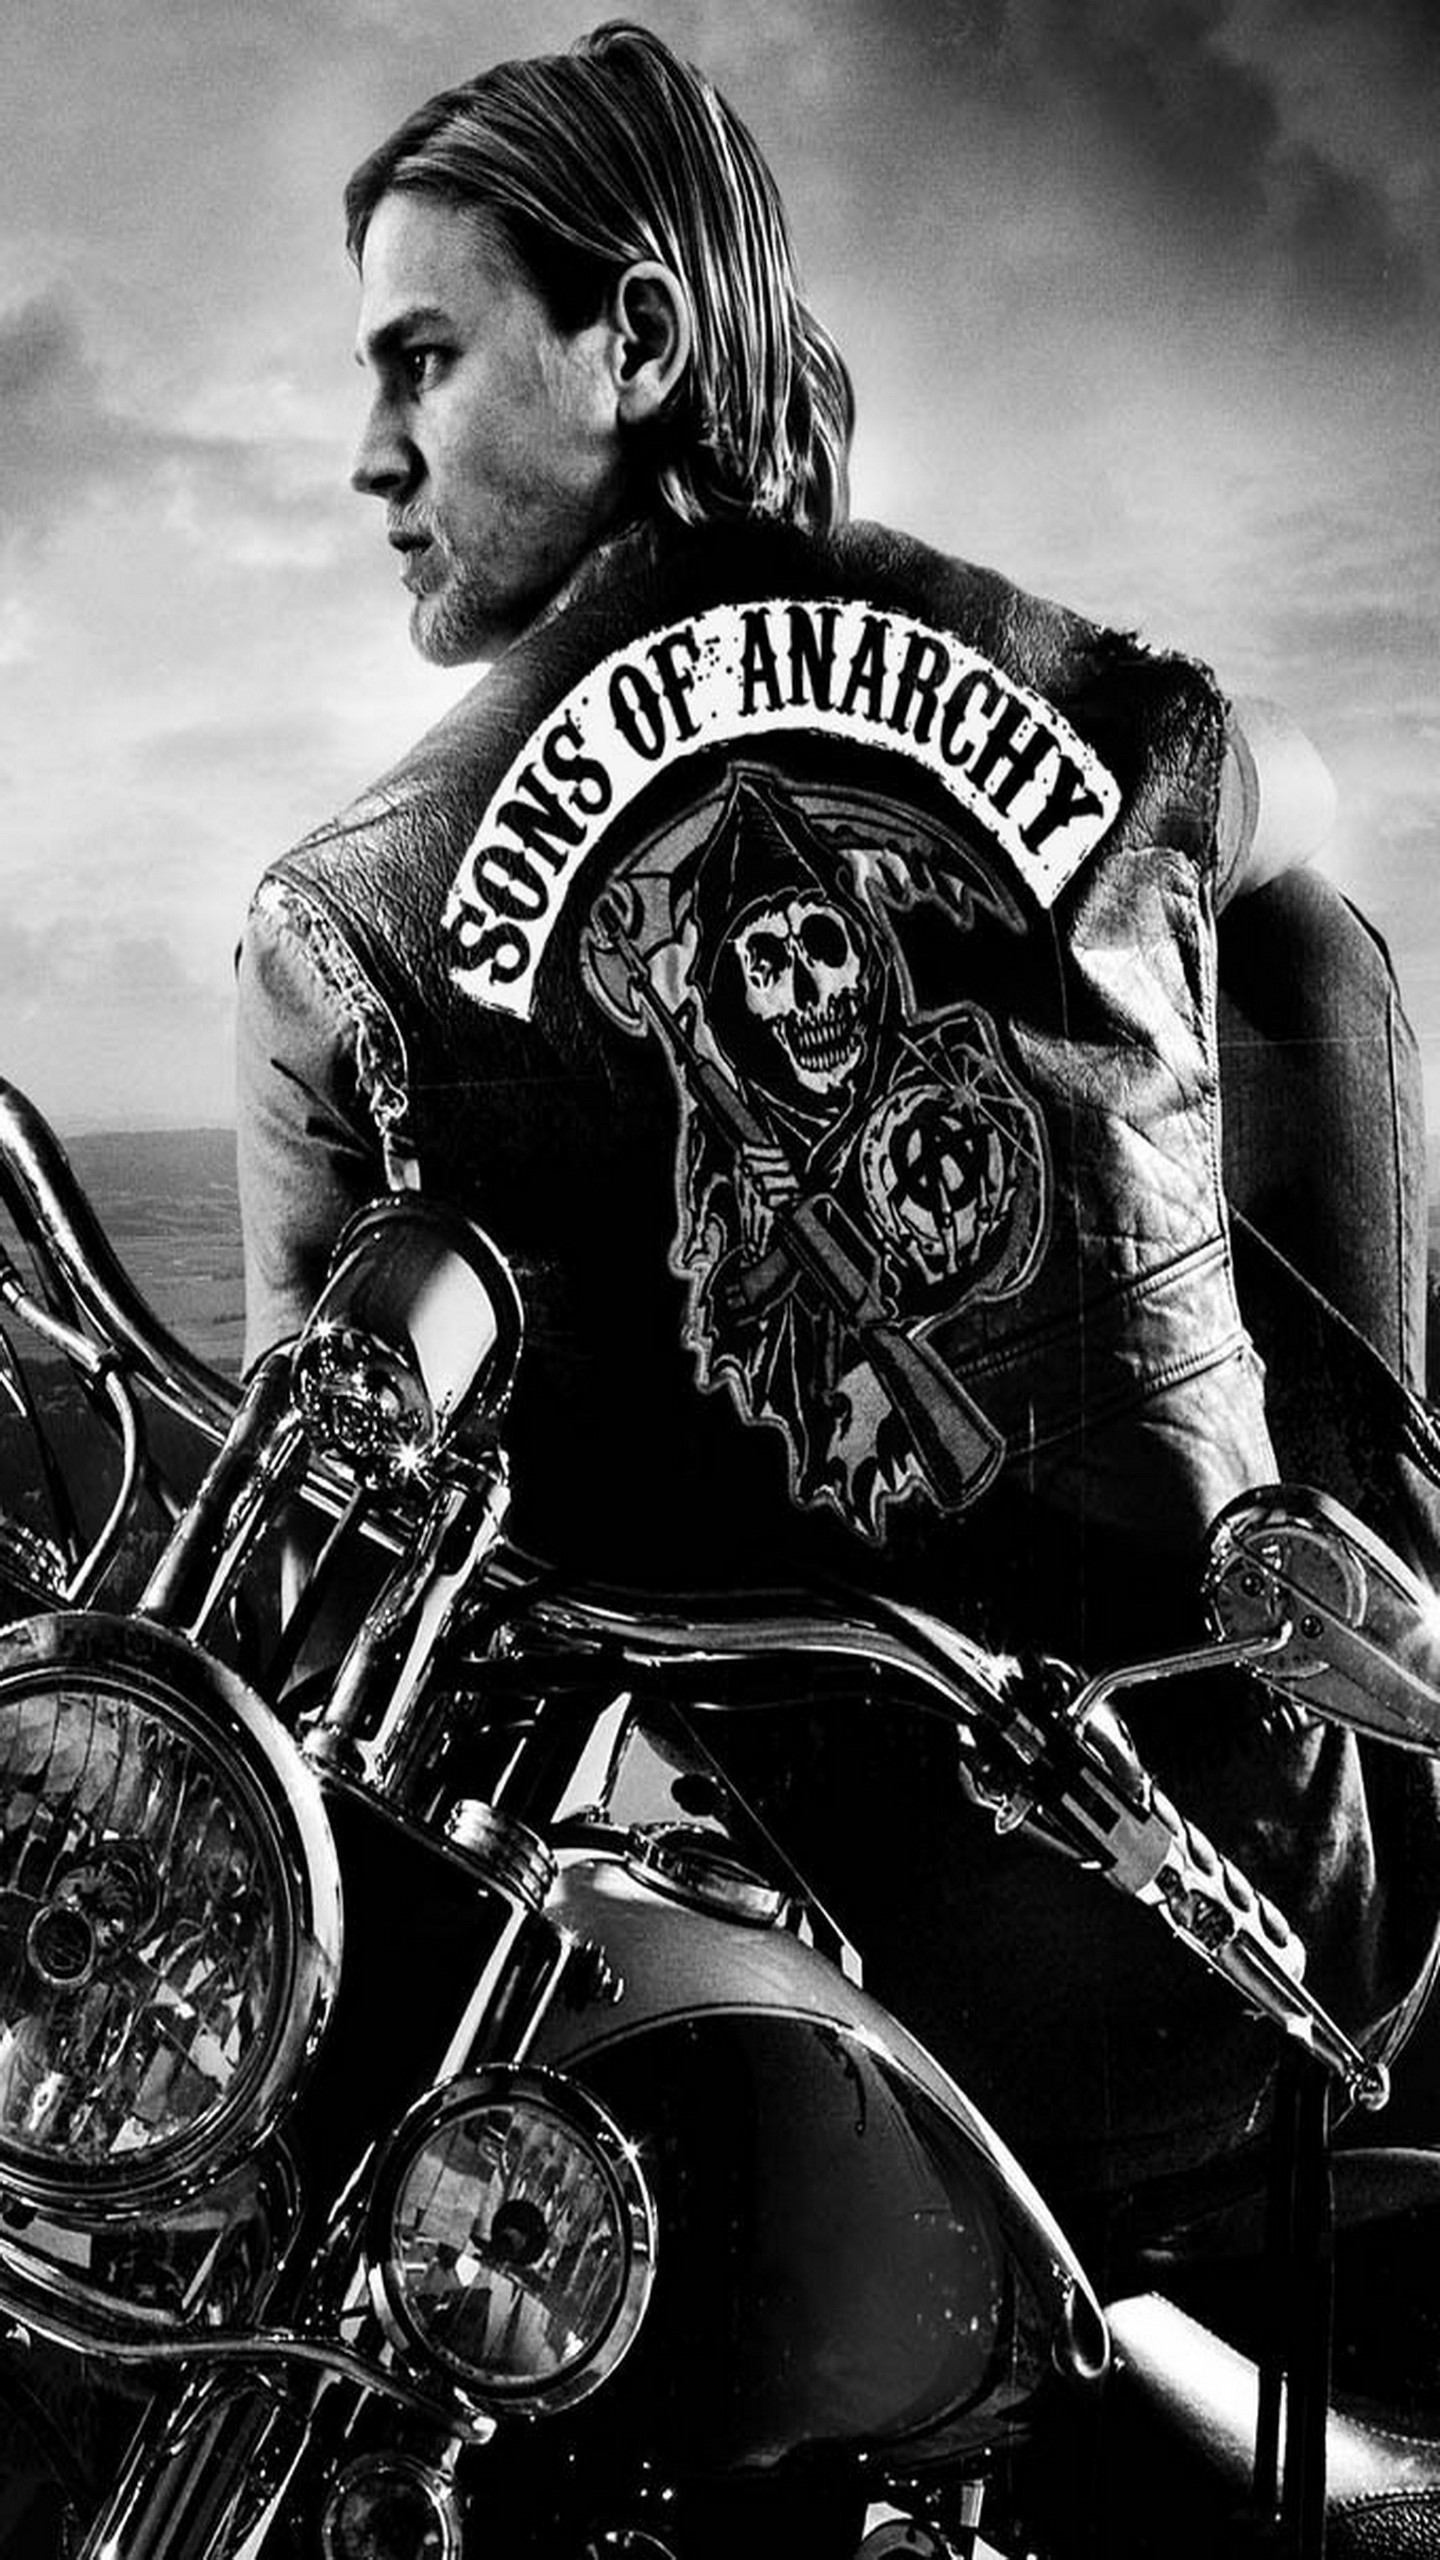 Sons of Anarchy Galaxy Note 4 Wallpaper, Edge – Wallpapers, Galaxy .